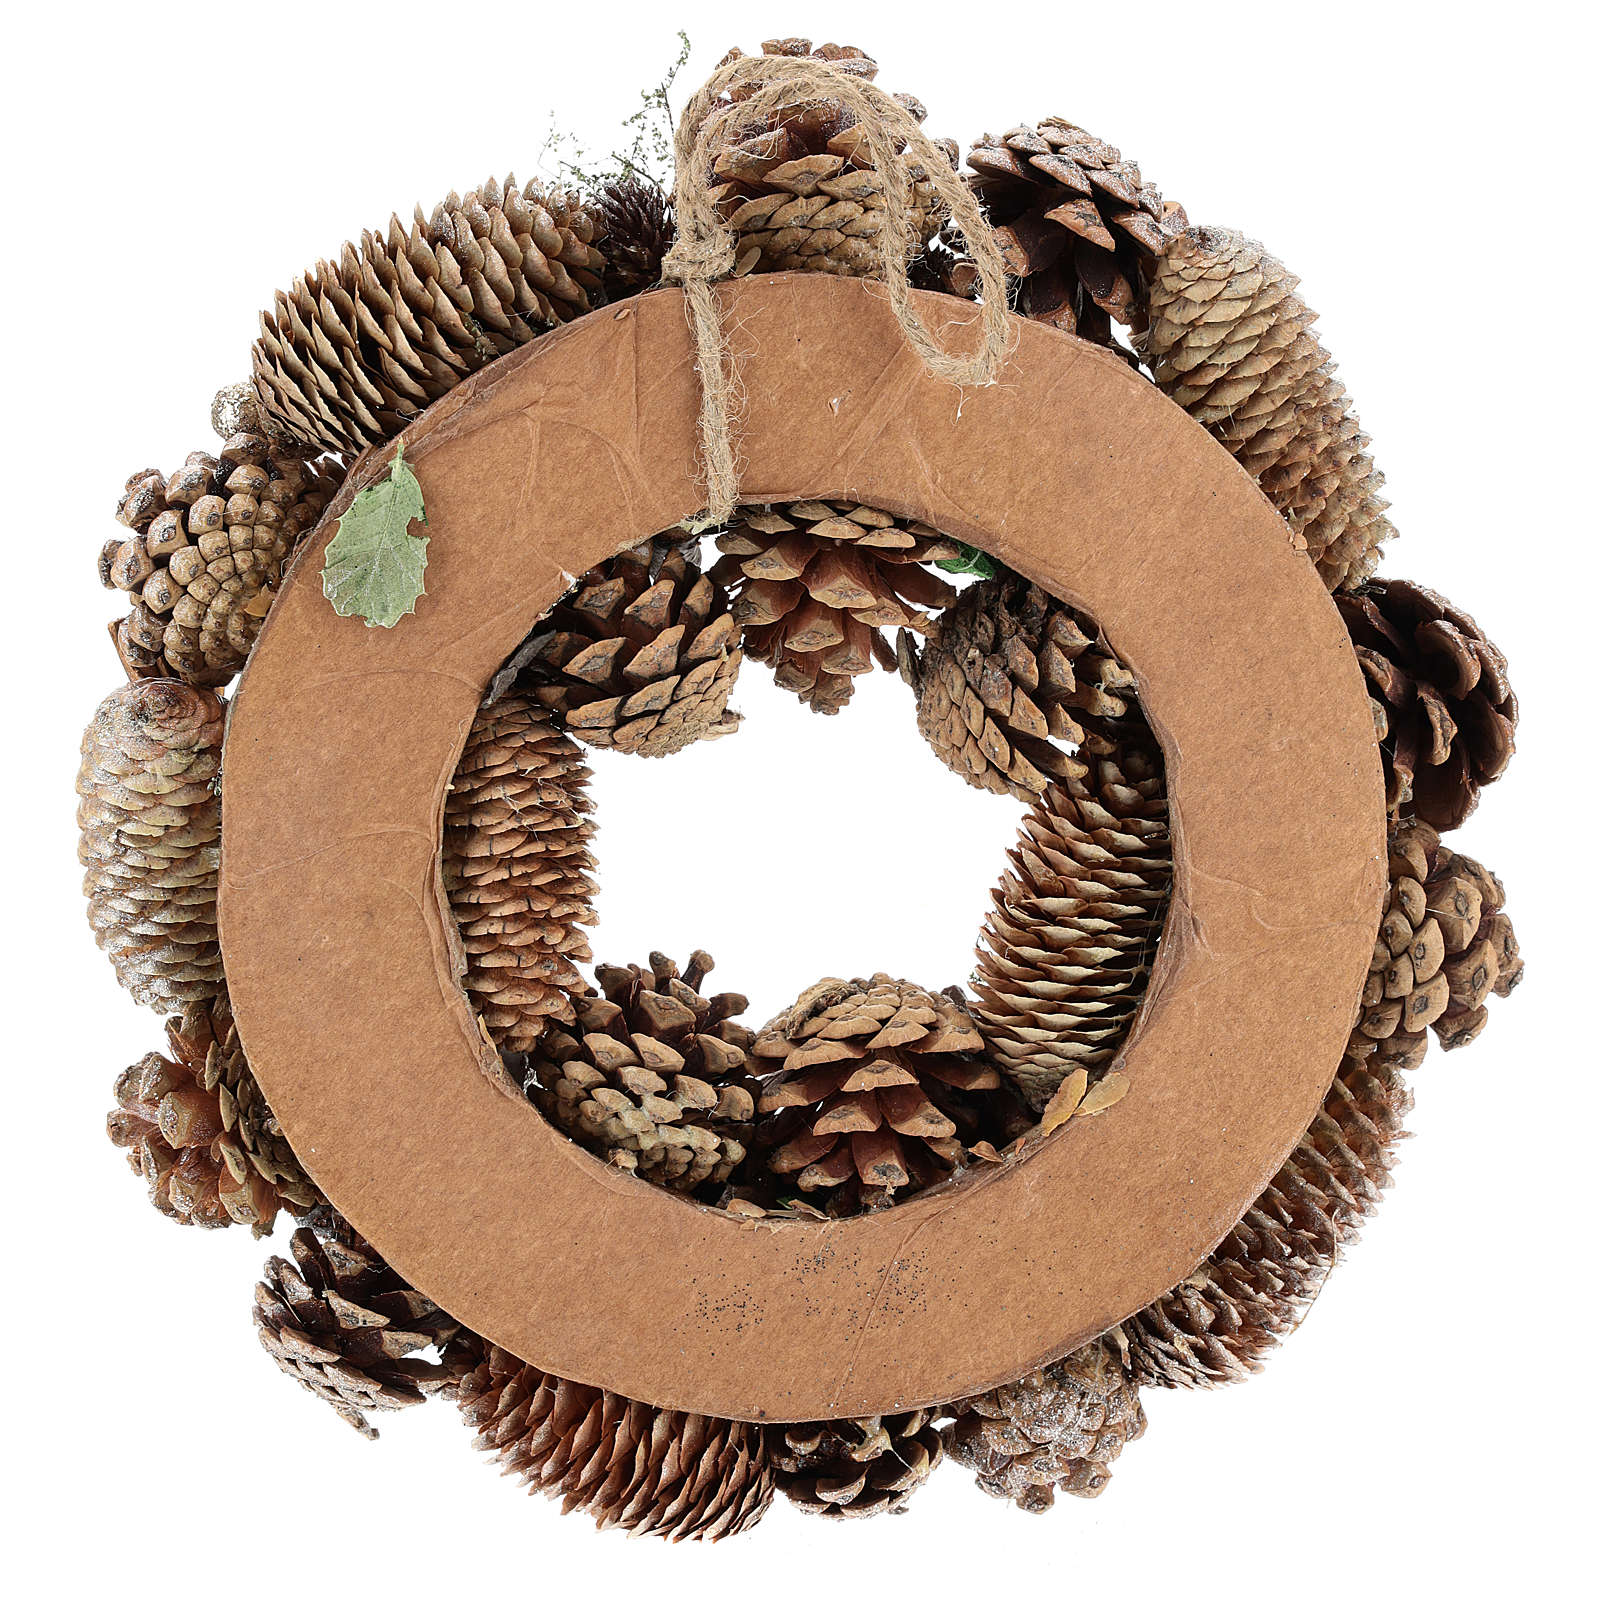 Advent wreath with pine cones and apples 30 cm, Gold finish 3